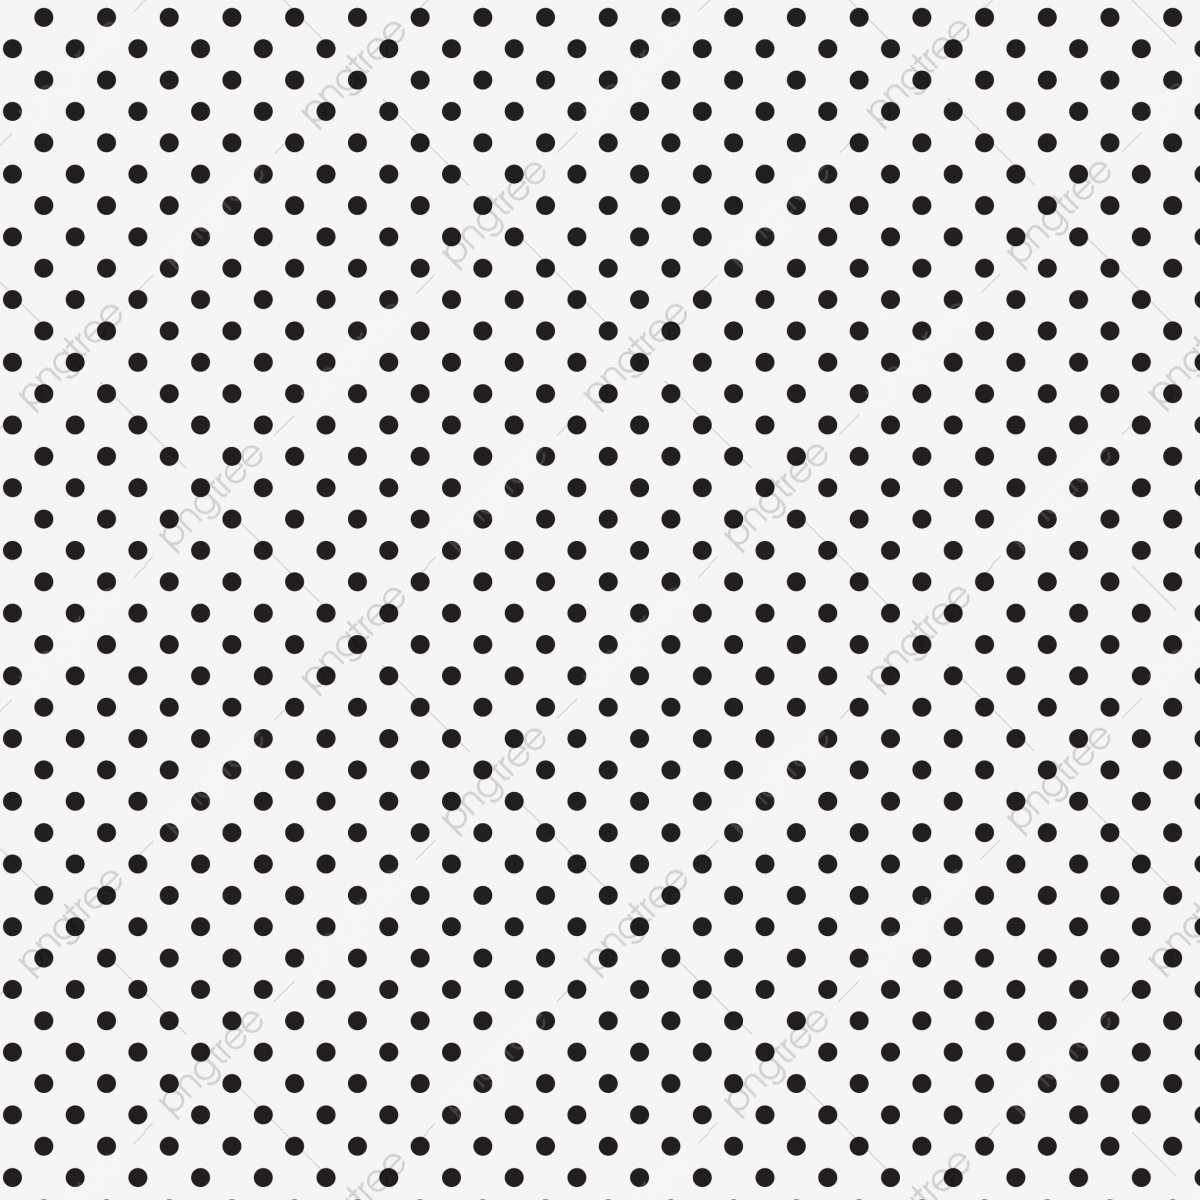 Black Dots, Small Dots, Painted, Black PNG Transparent Image and.